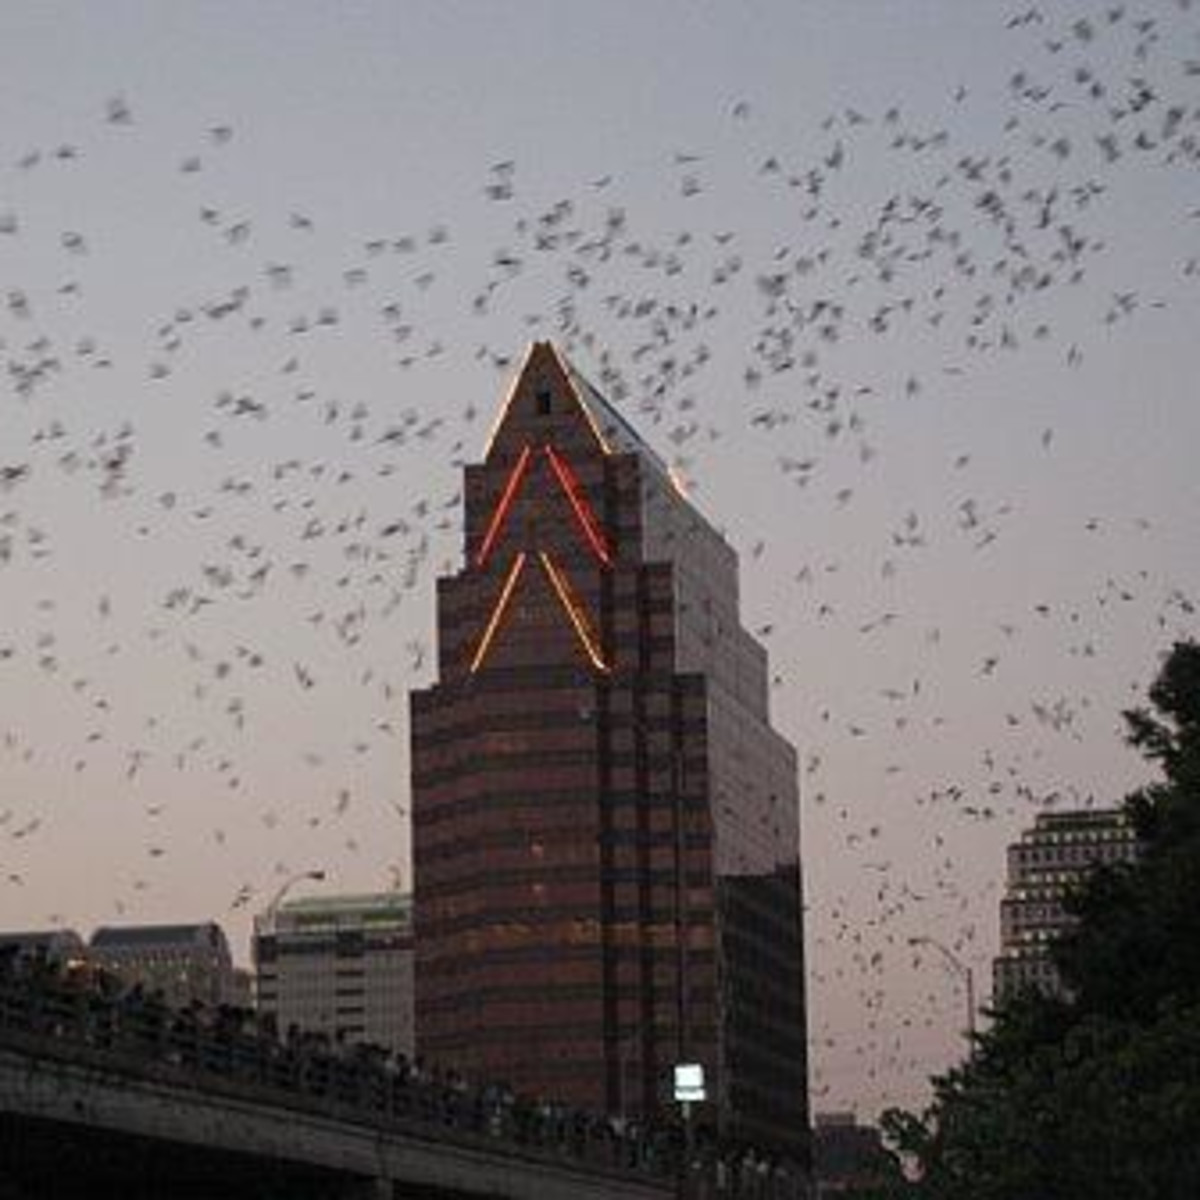 Austin Photo: Places_unique_austin_congress_avenue_bat_bridge_bats